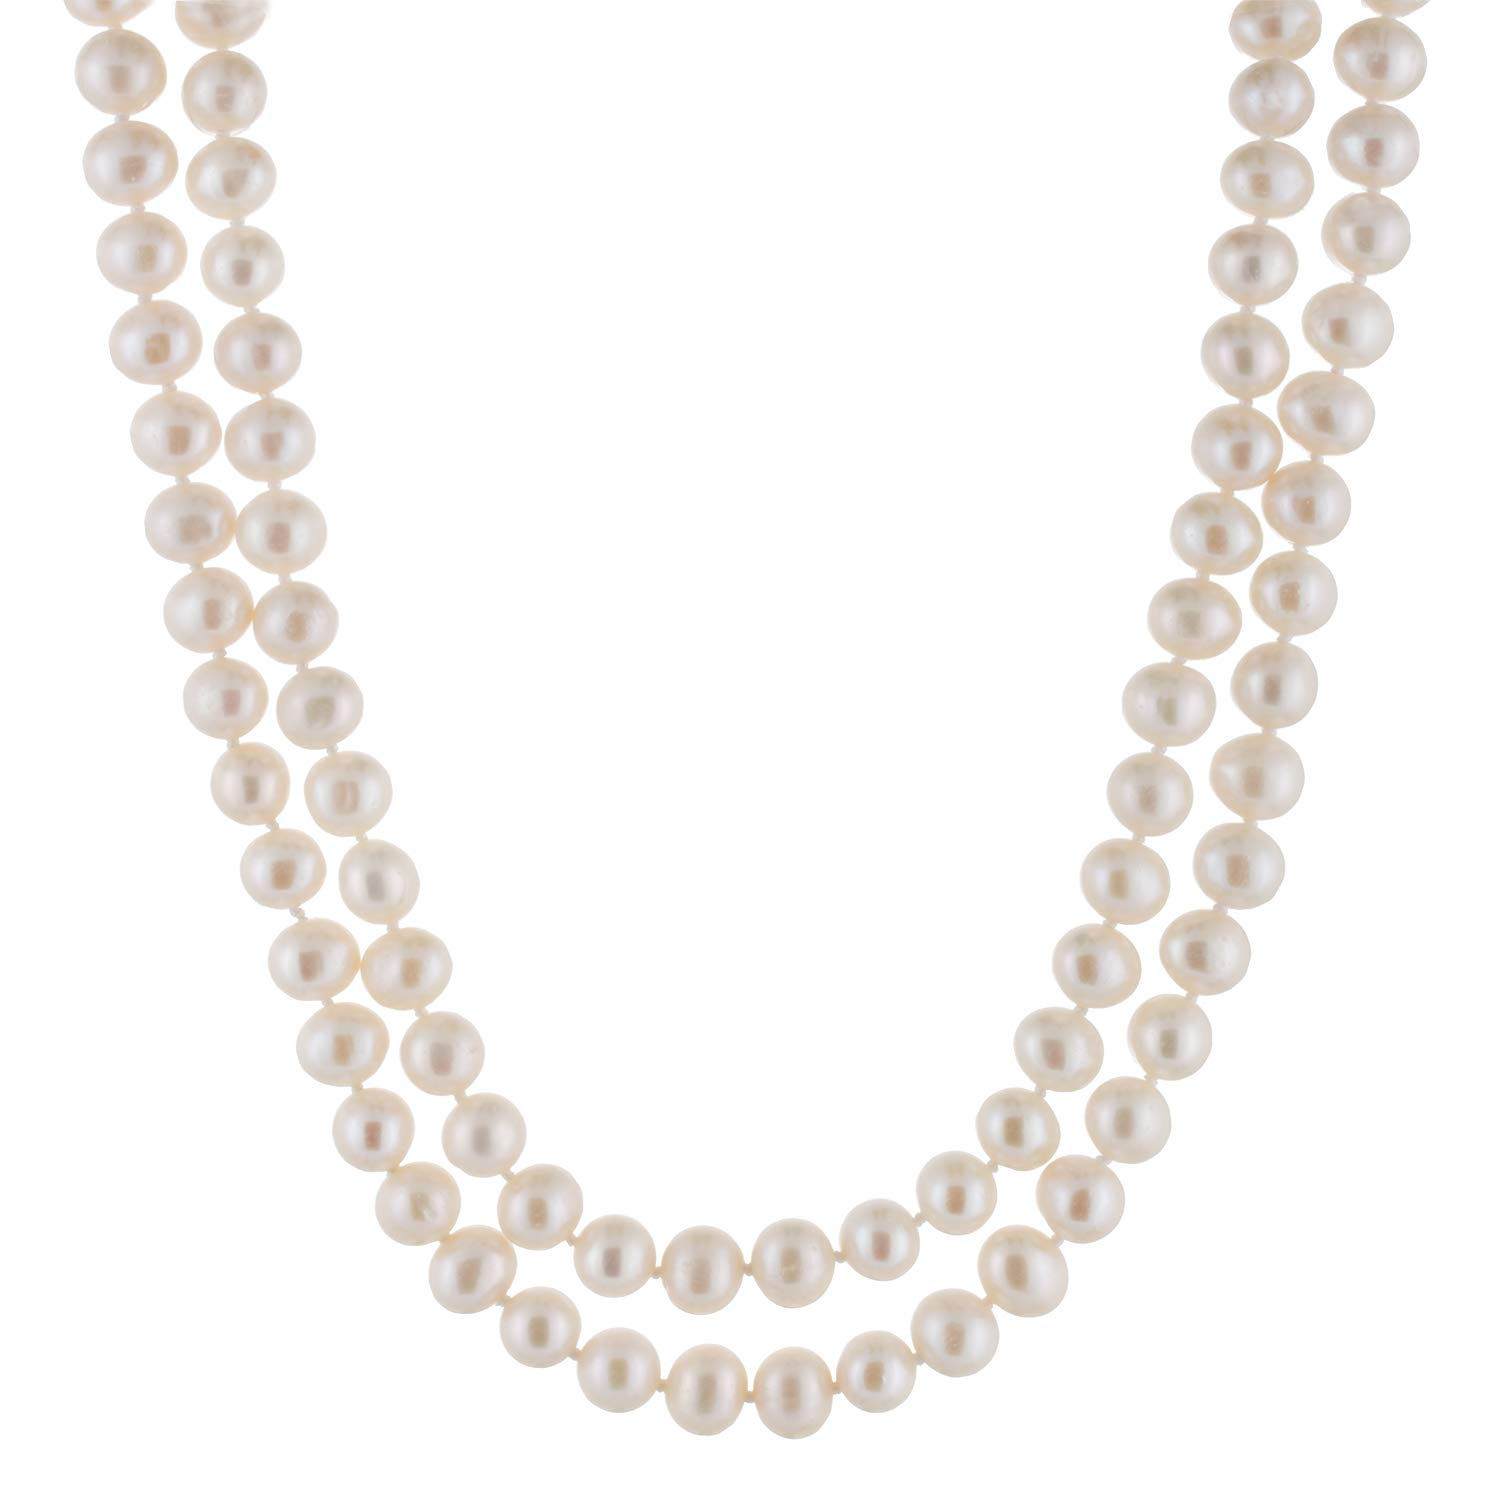 Handpicked A Quality 8-9mm White Freshwater Cultured Pearl Strand Endless 64'' Necklace